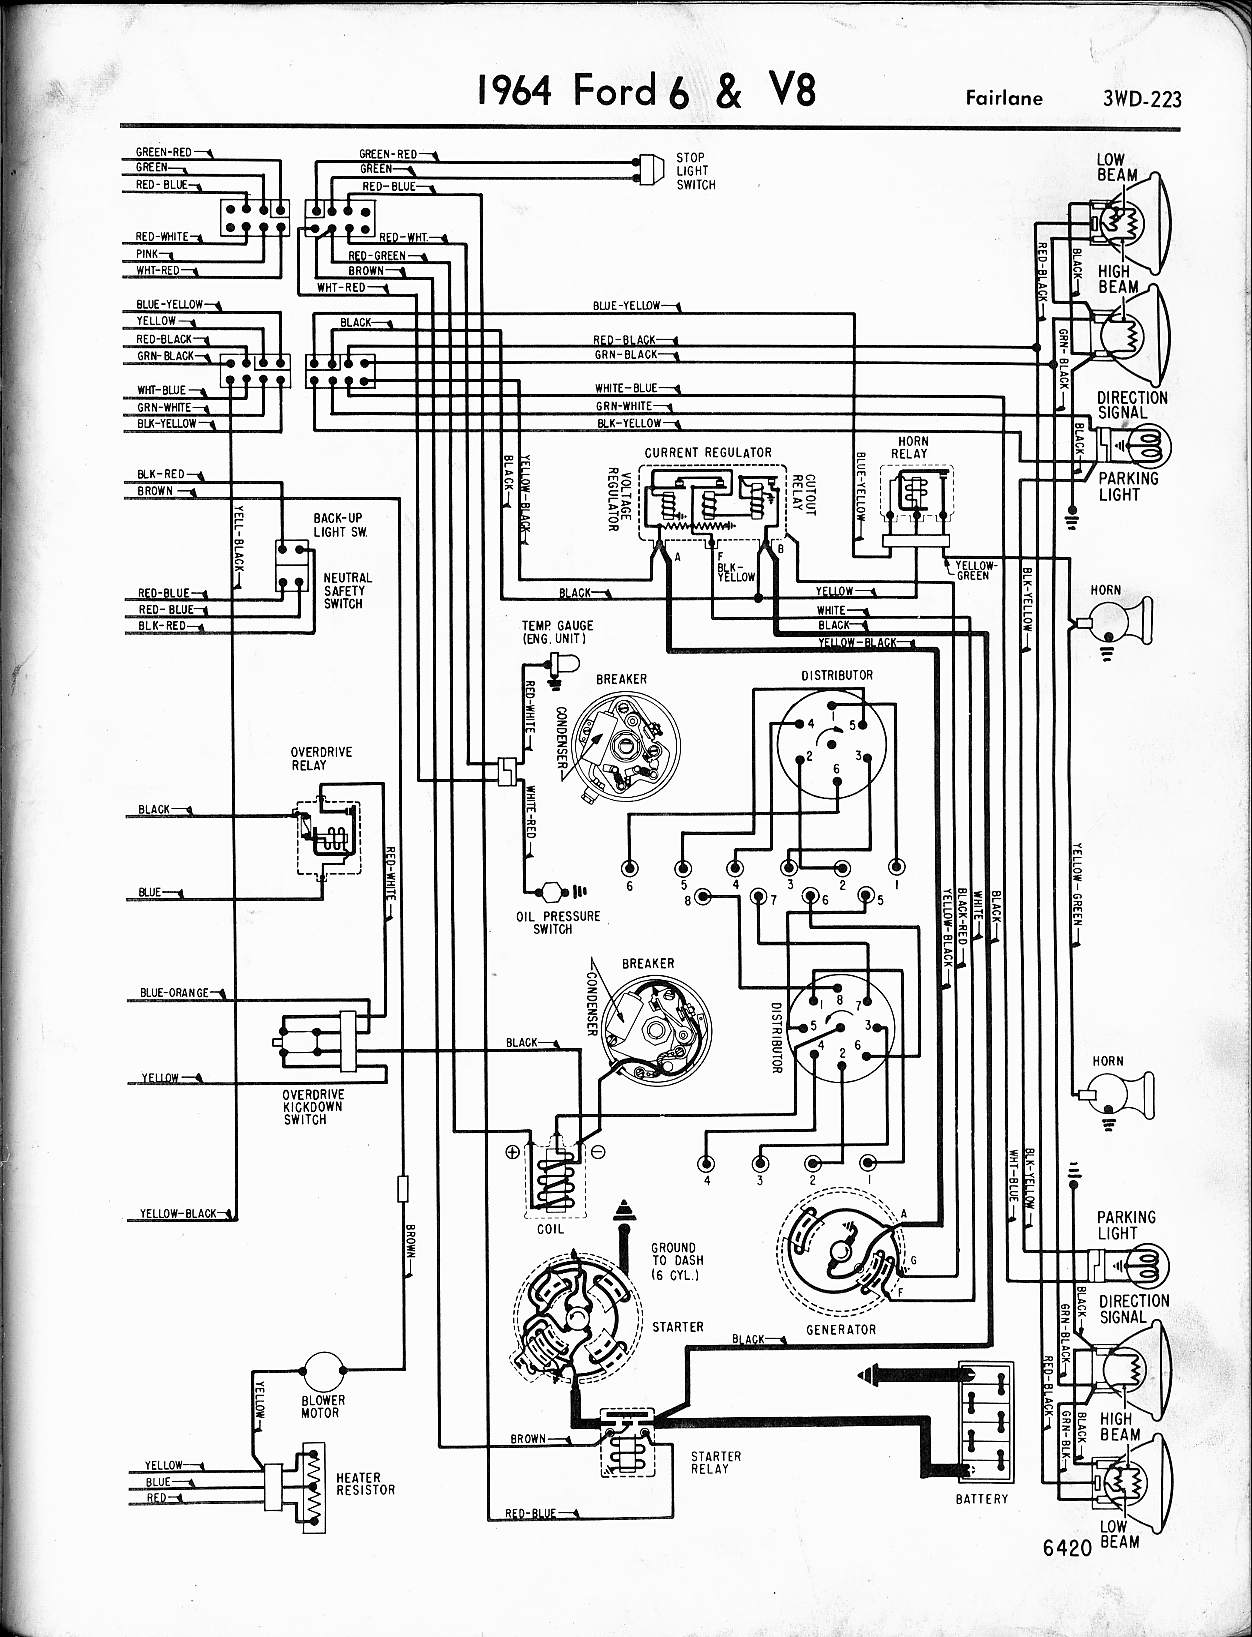 1970 Thunderbird Instrument Cluster Diagram Wiring Schematic Corvette 57 65 Ford Diagrams Rh Oldcarmanualproject Com Bronco Camaro